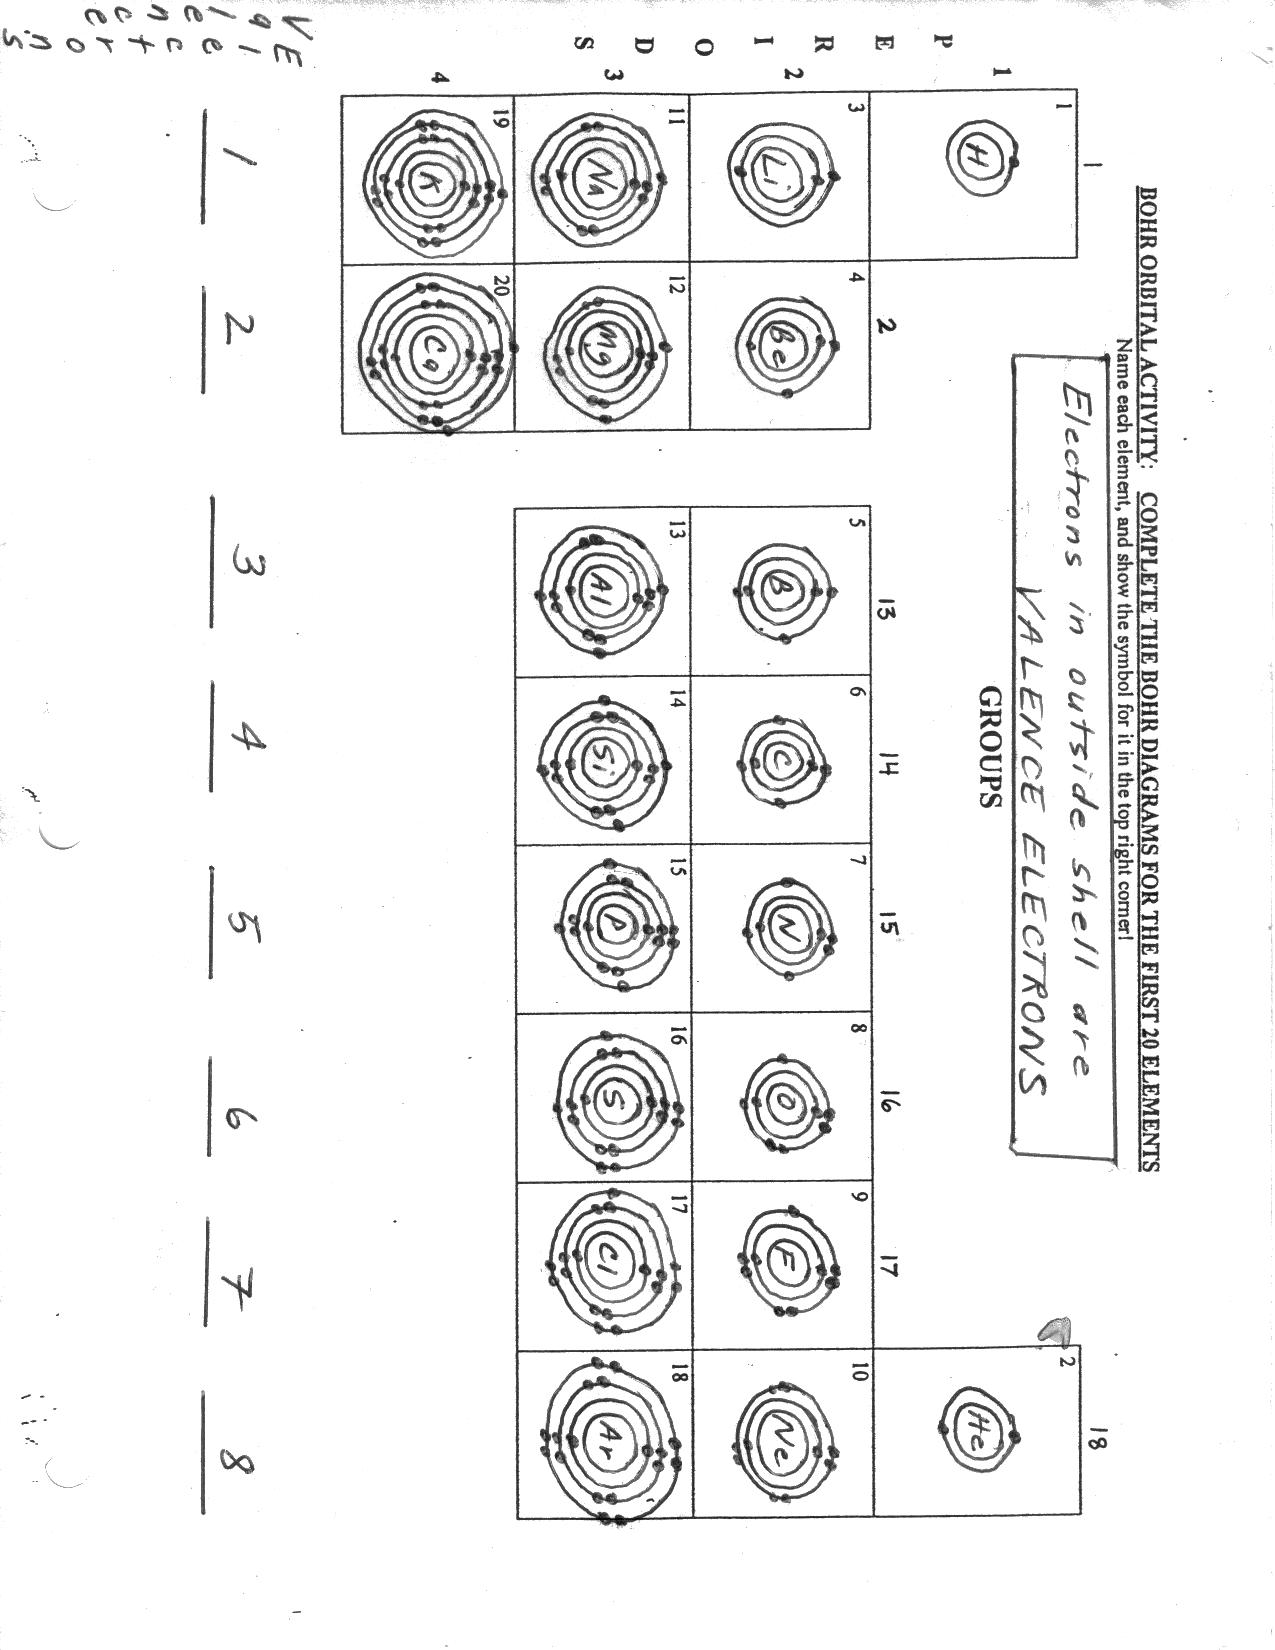 Printables Bohr Model Worksheet bohr model worksheet answers pichaglobal